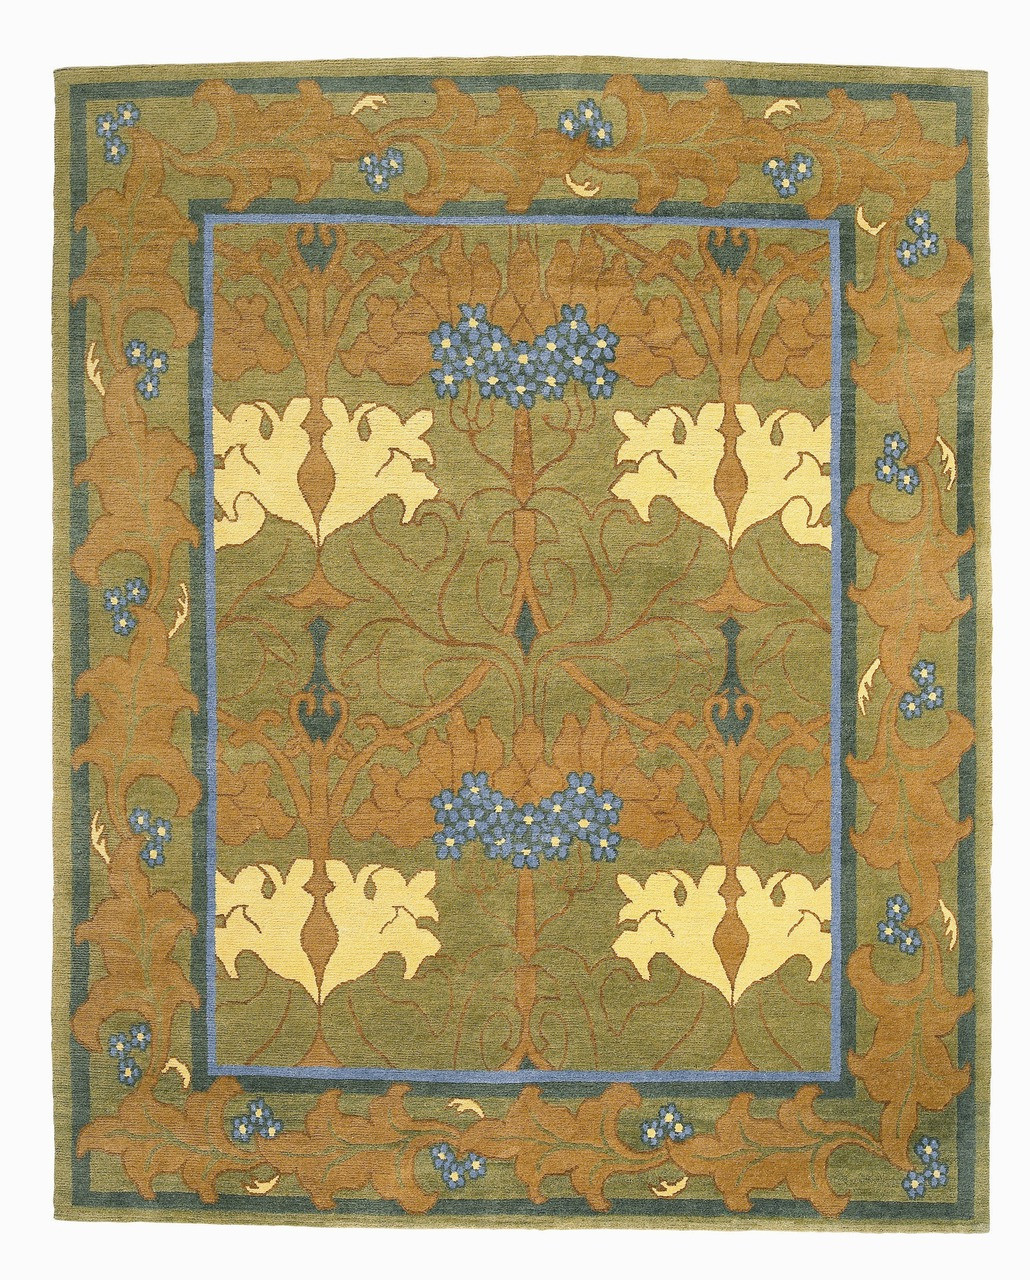 Craftsman Donegal Fintona Forest Earth Rug - The Mission Motif